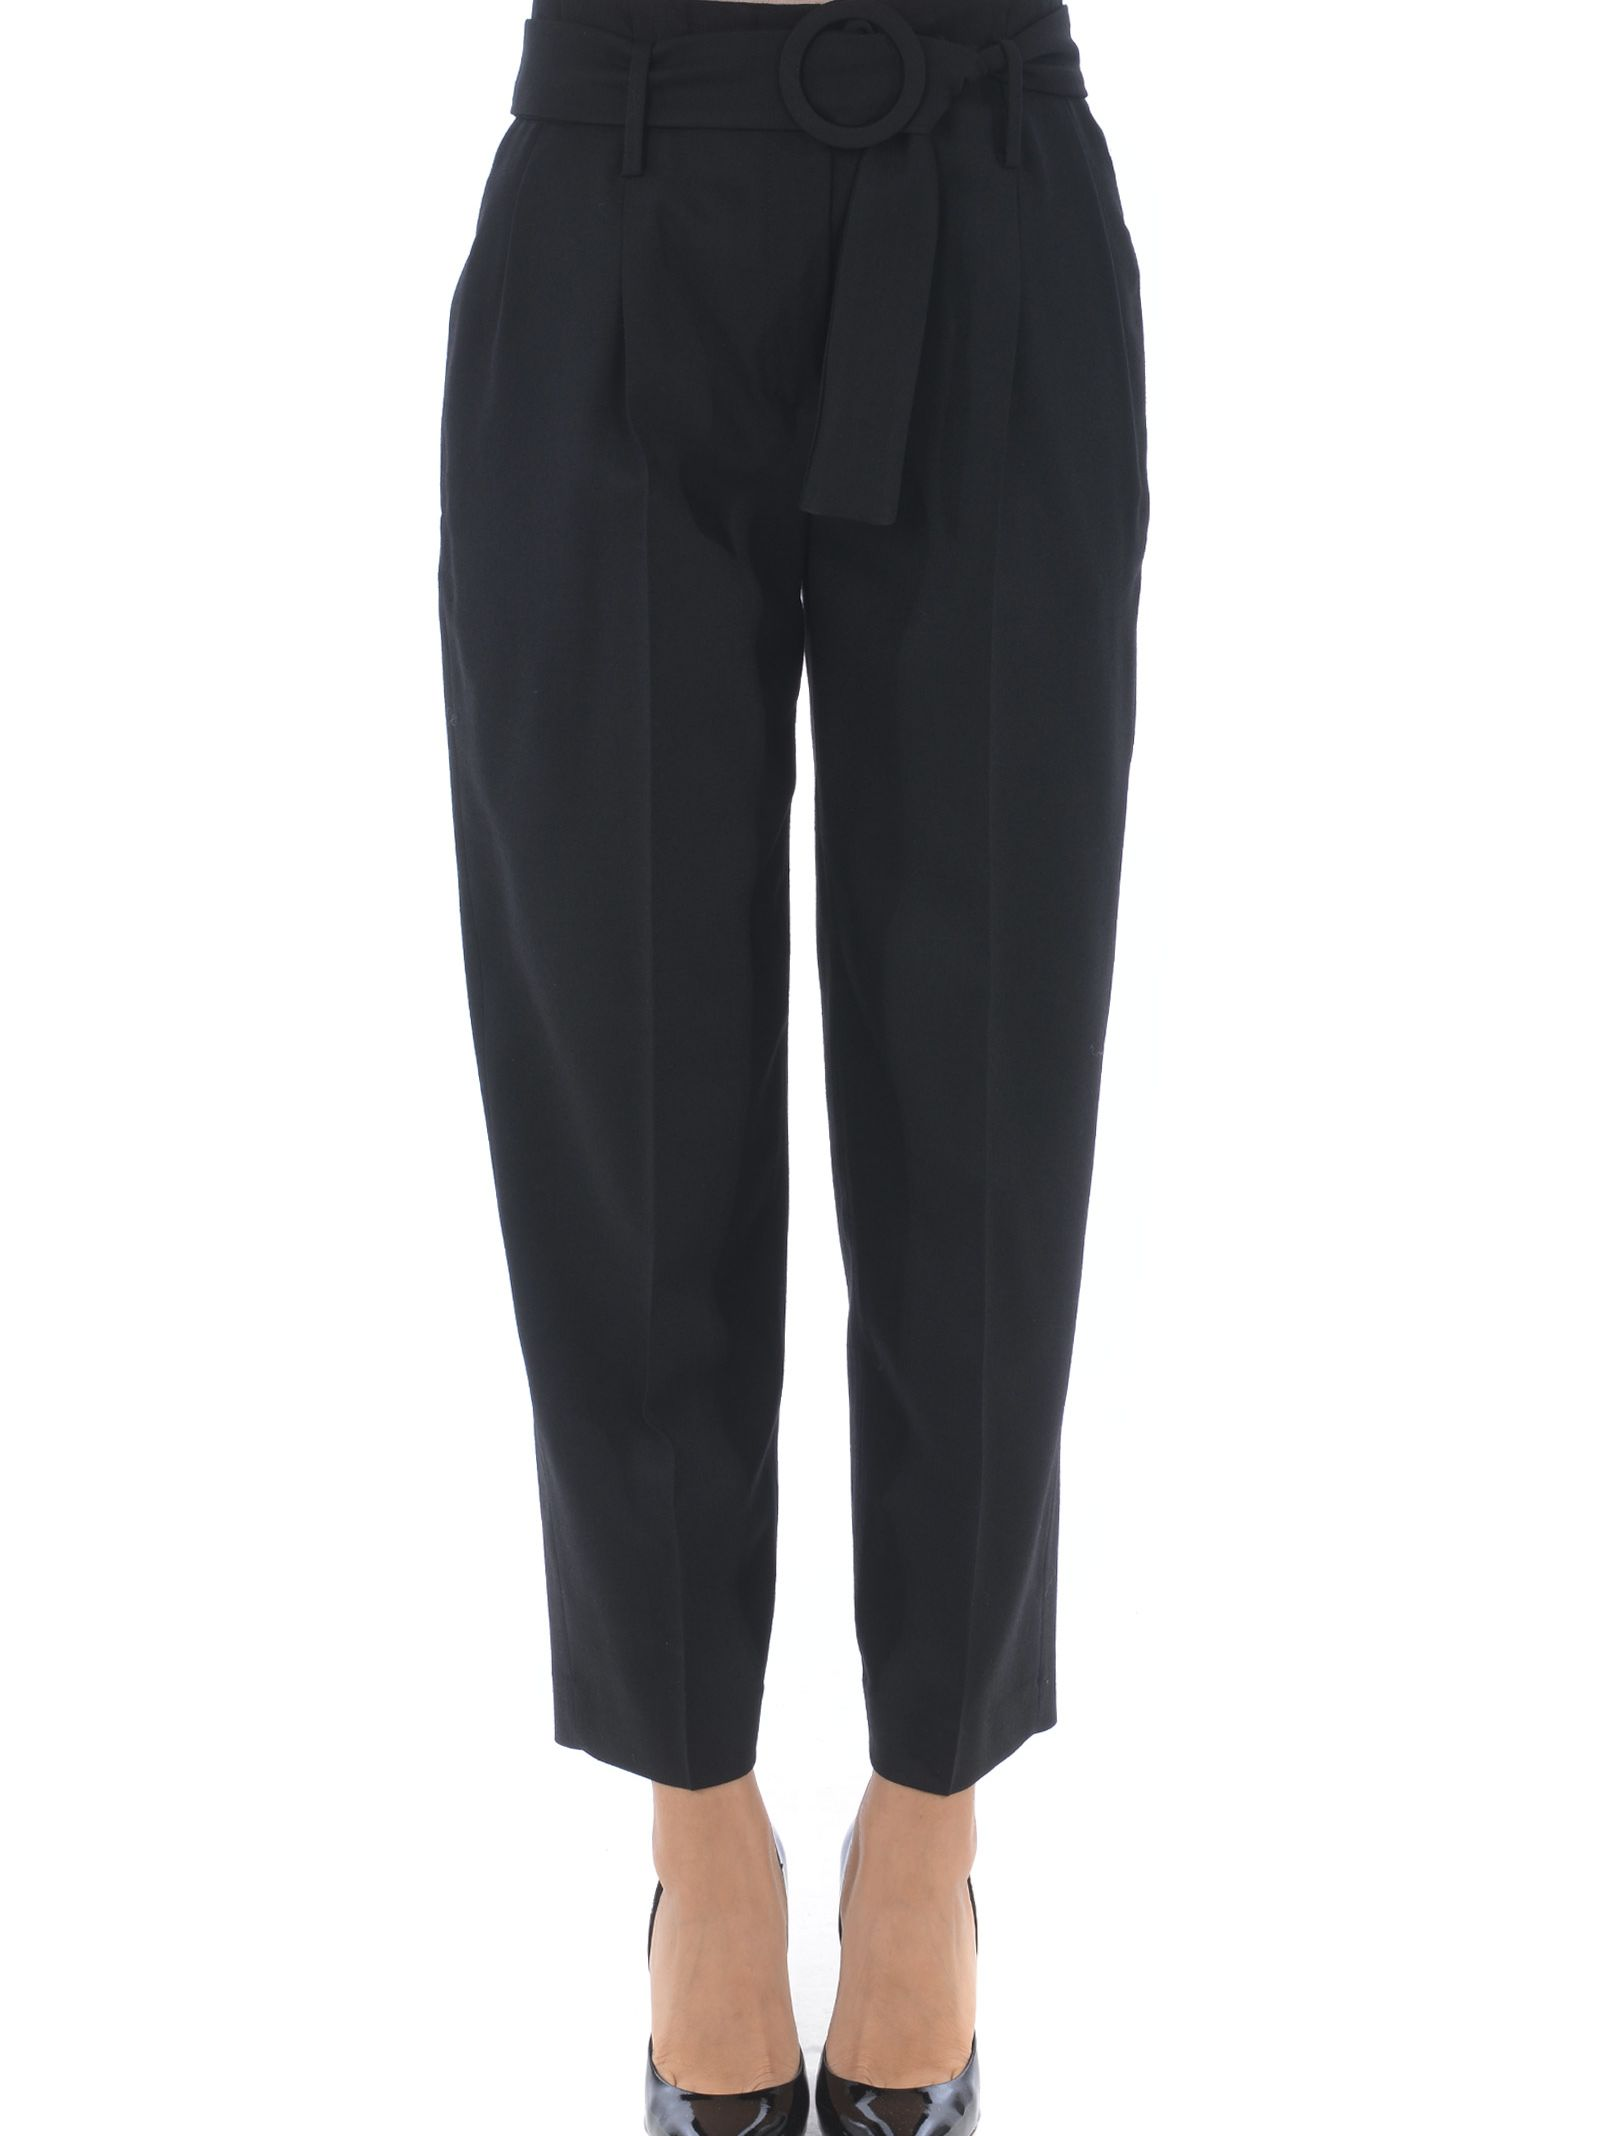 TRUE ROYAL Belted Cropped Trousers in Nero